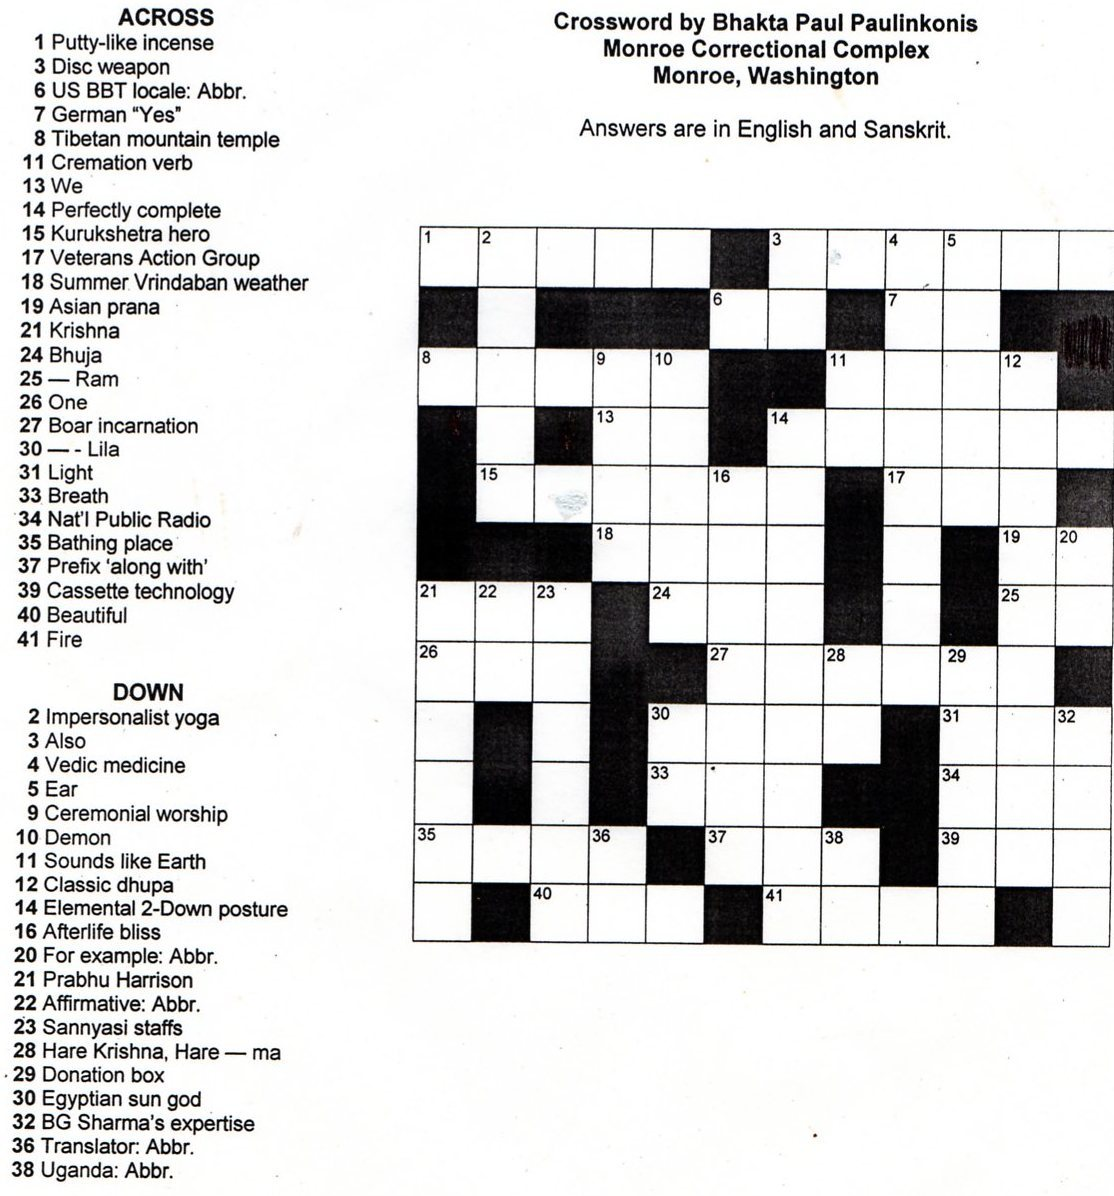 Download Printable Crossword Puzzles 2